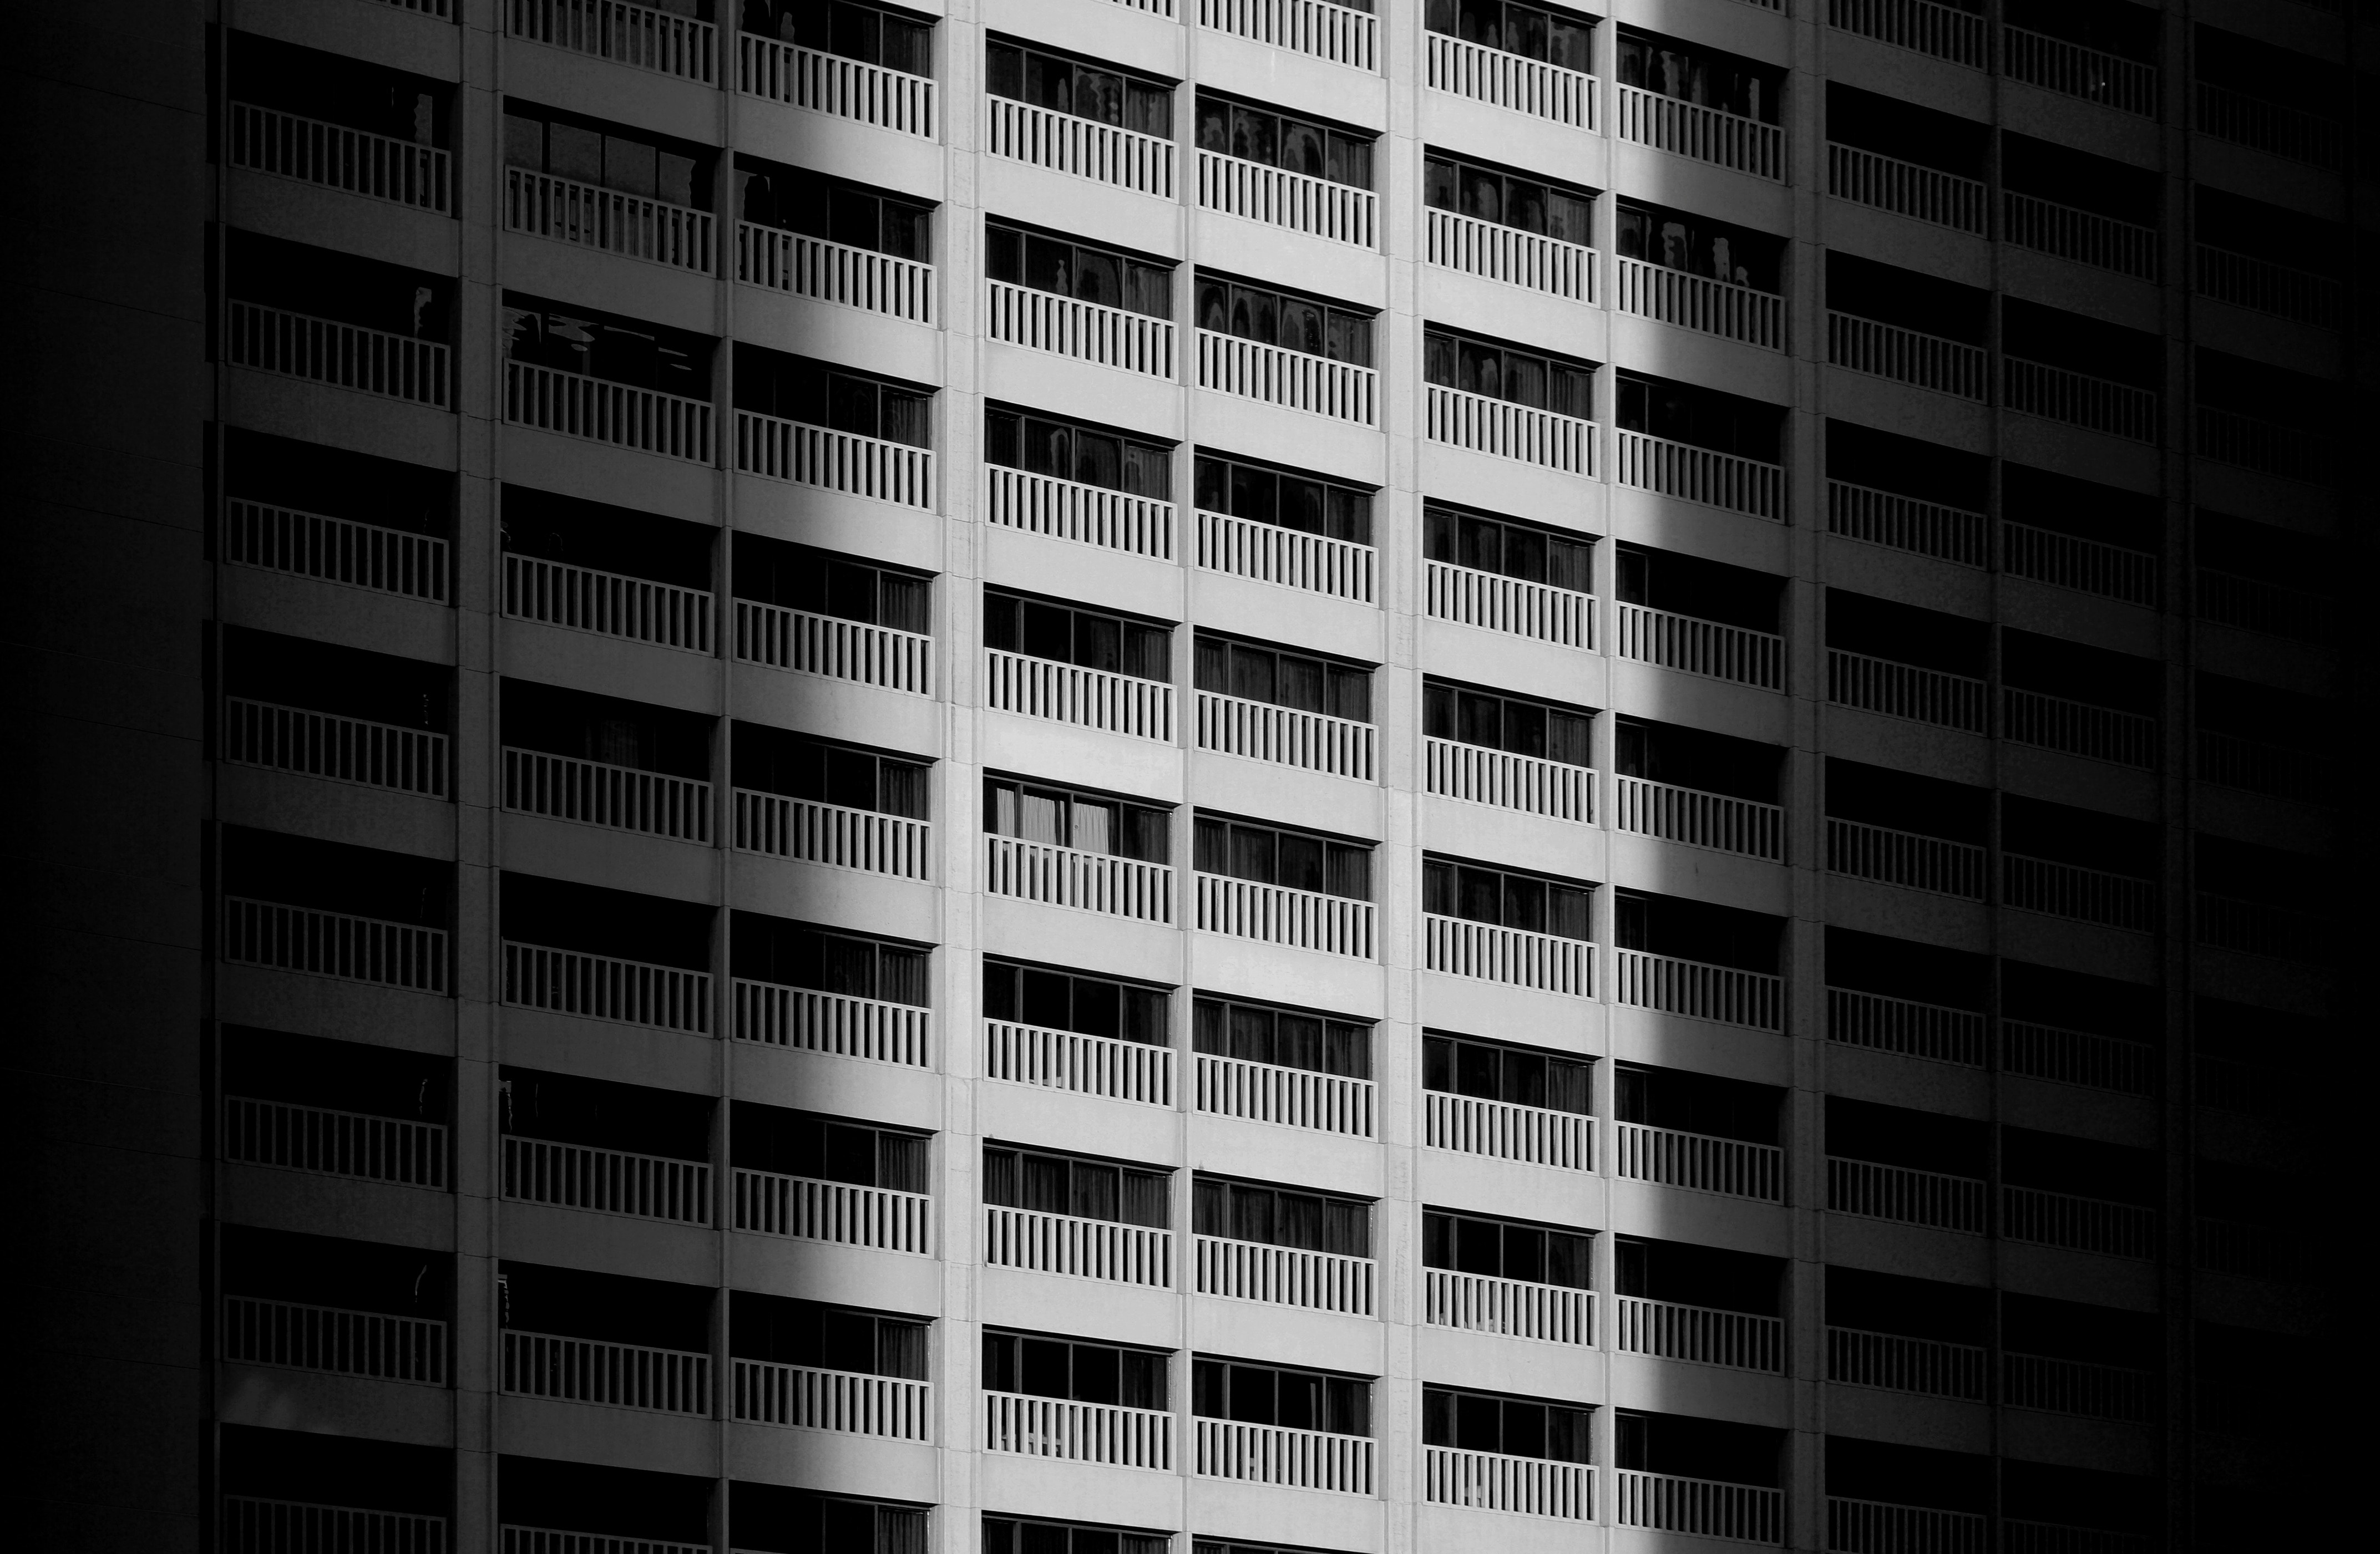 Black and White Building